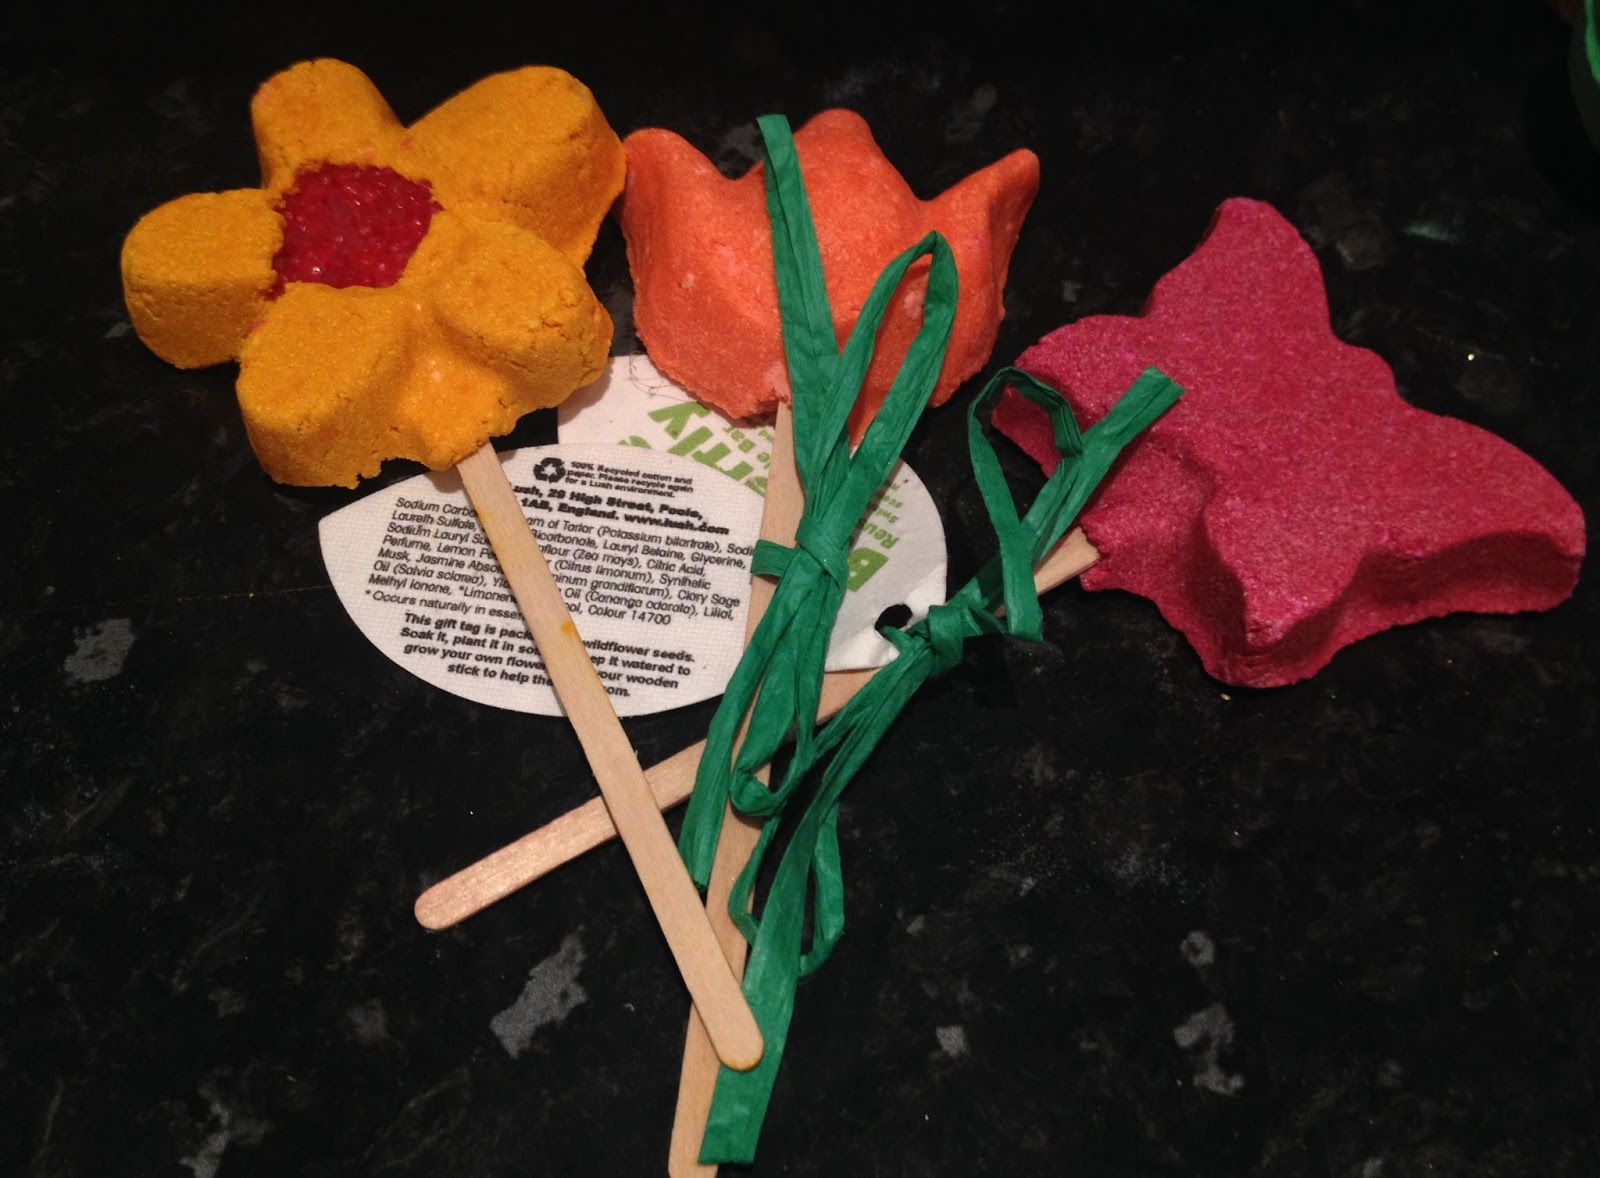 Lush's Mother's Day Range 2014, bubble wands